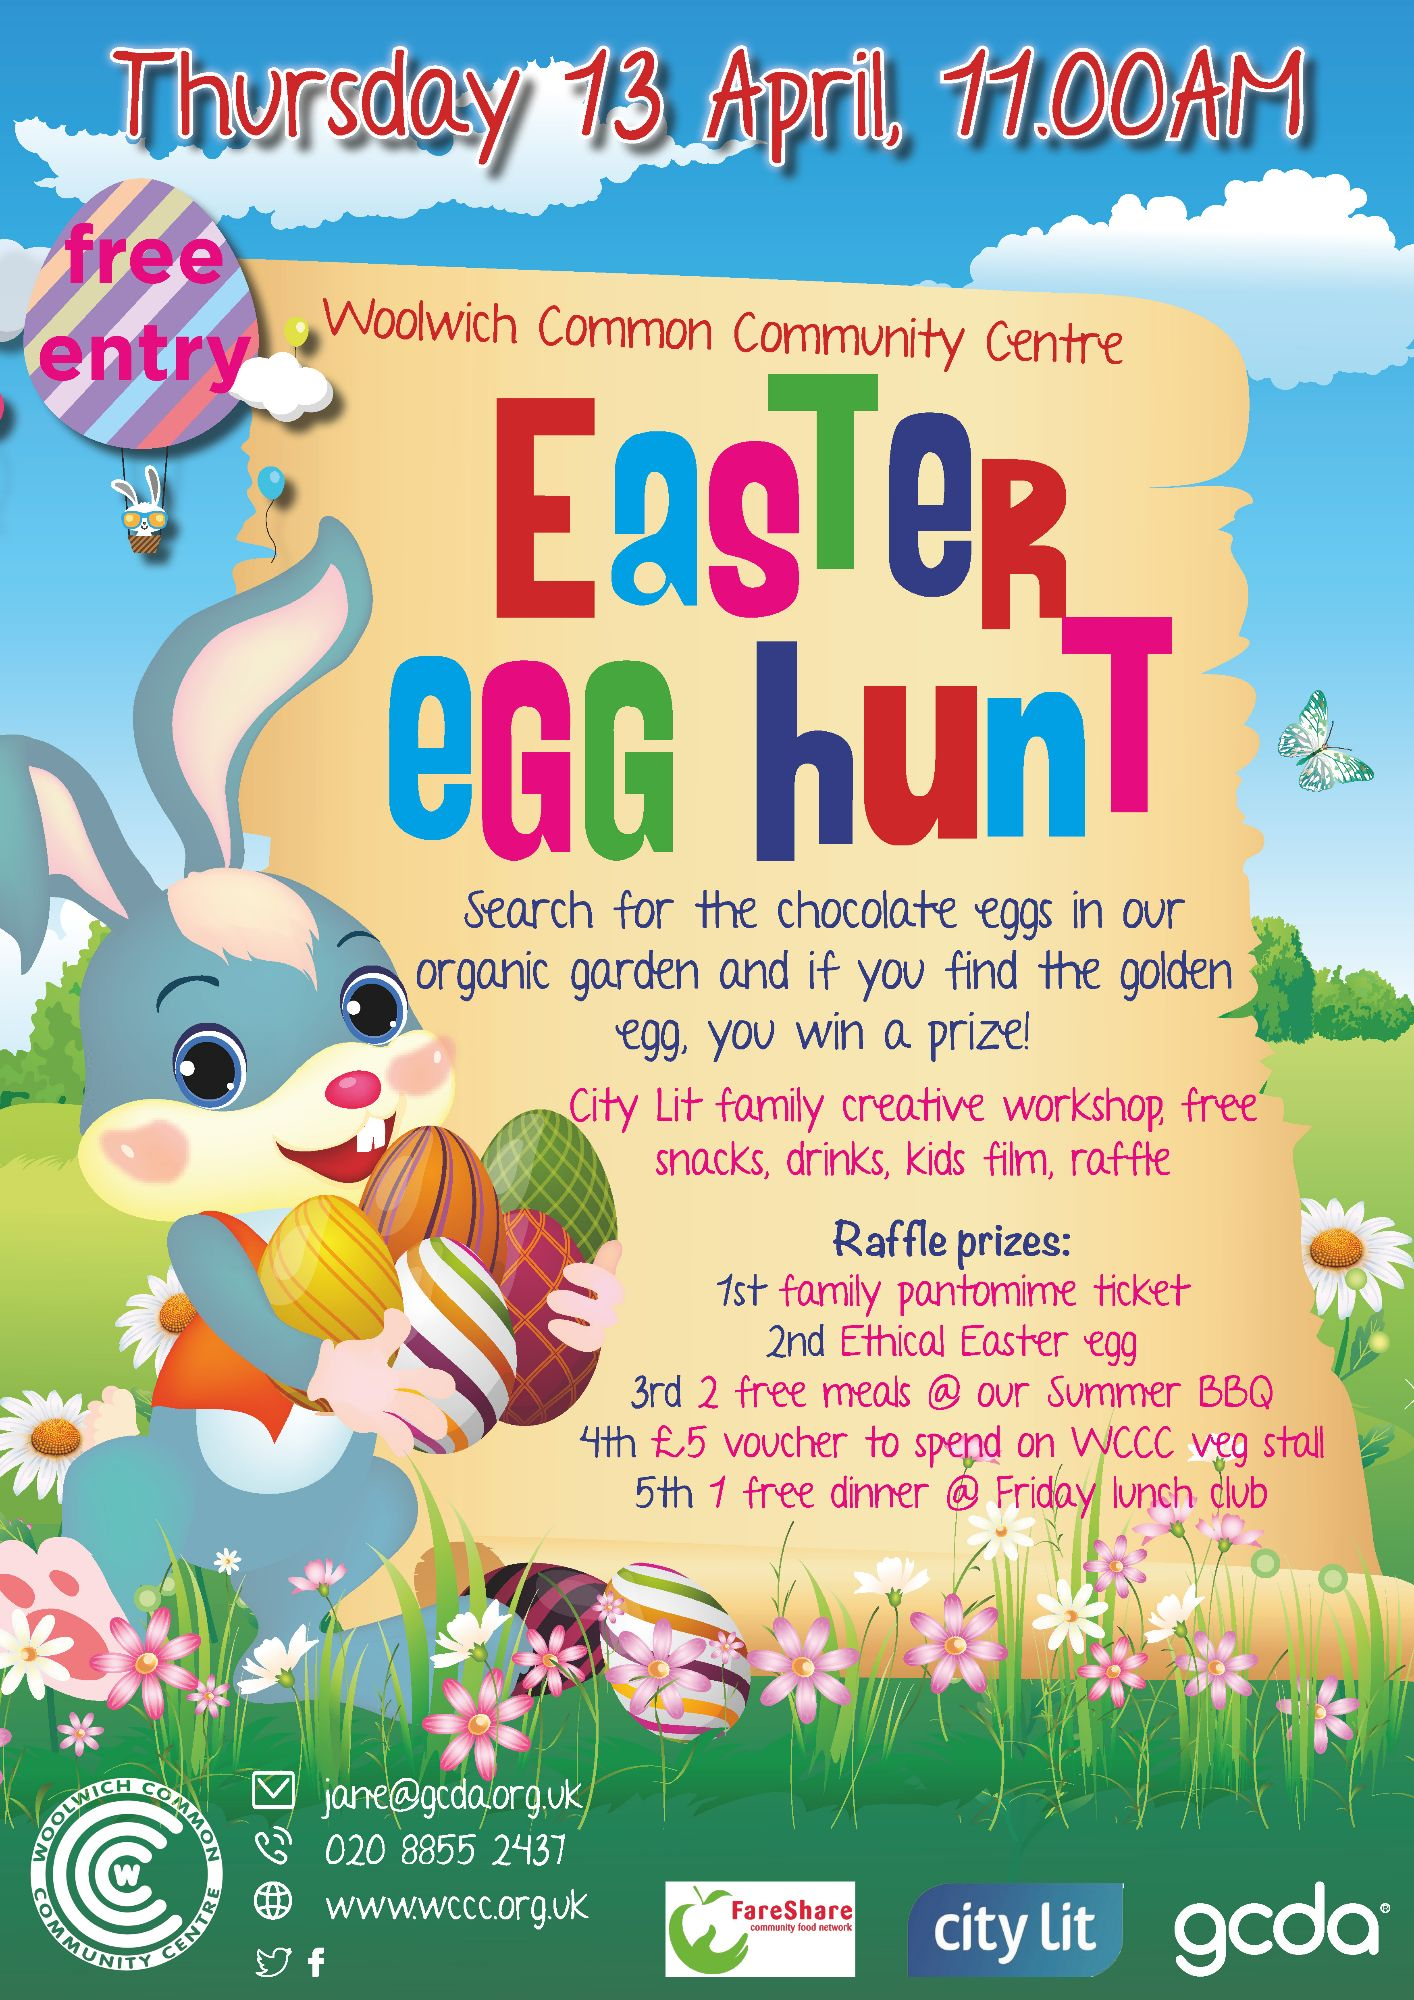 Woolwich Common Community Centre Easter Egg Hunt 2017